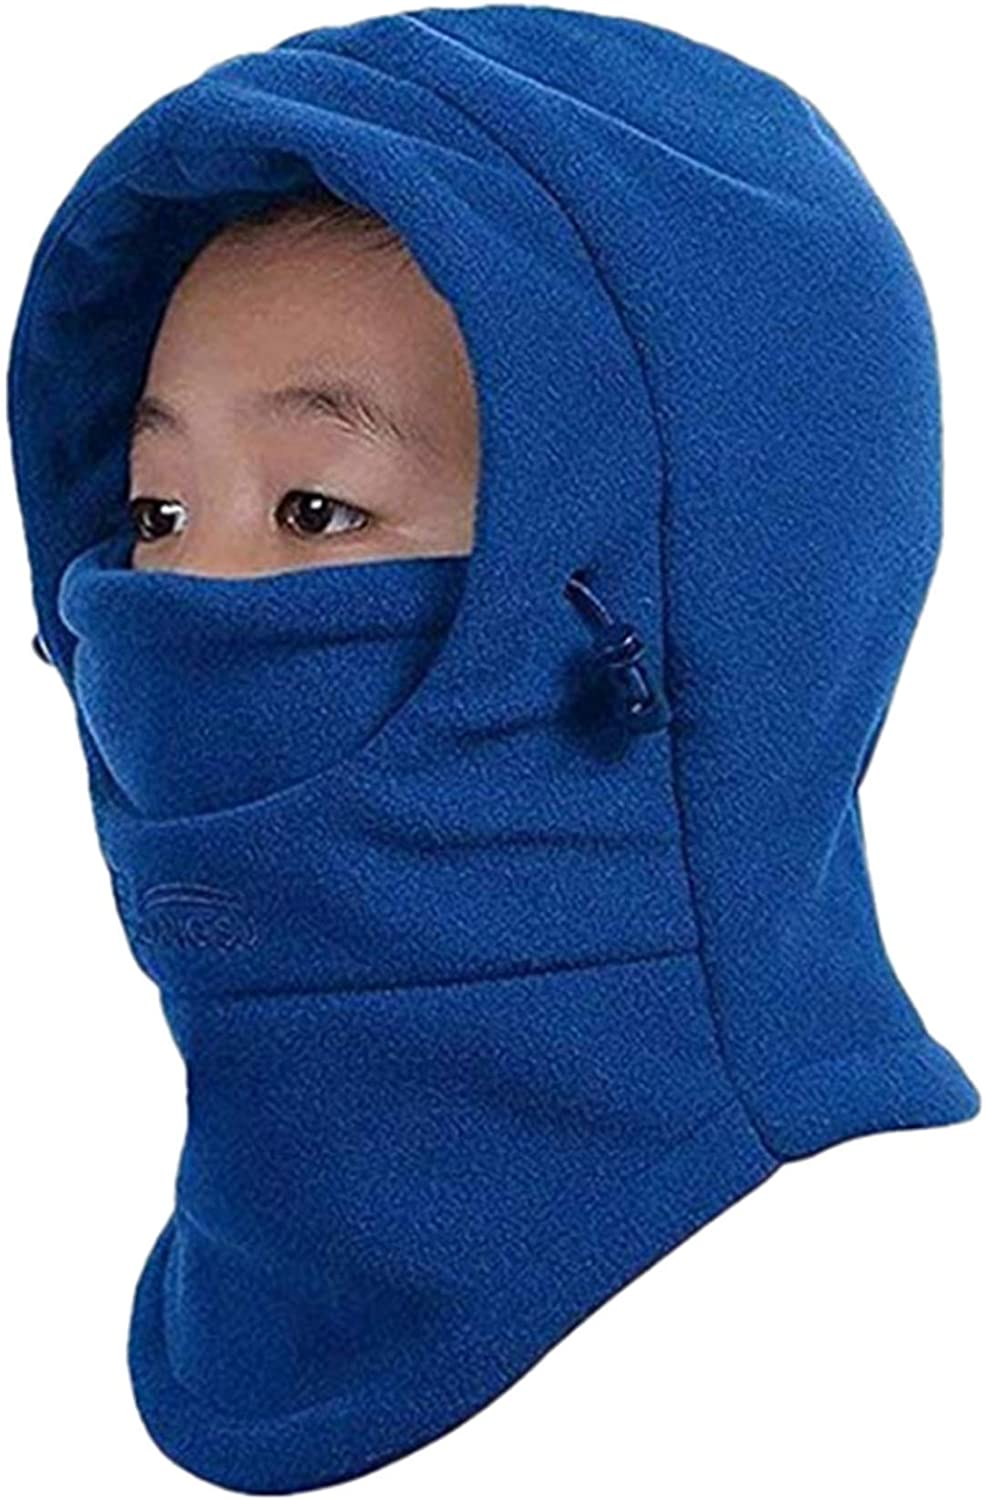 ZZLAY Childrens Balaclavas Hat Thick Thermal Windproof Ski Cycling Face Mask Caps Hood Cover Adjustable Cap